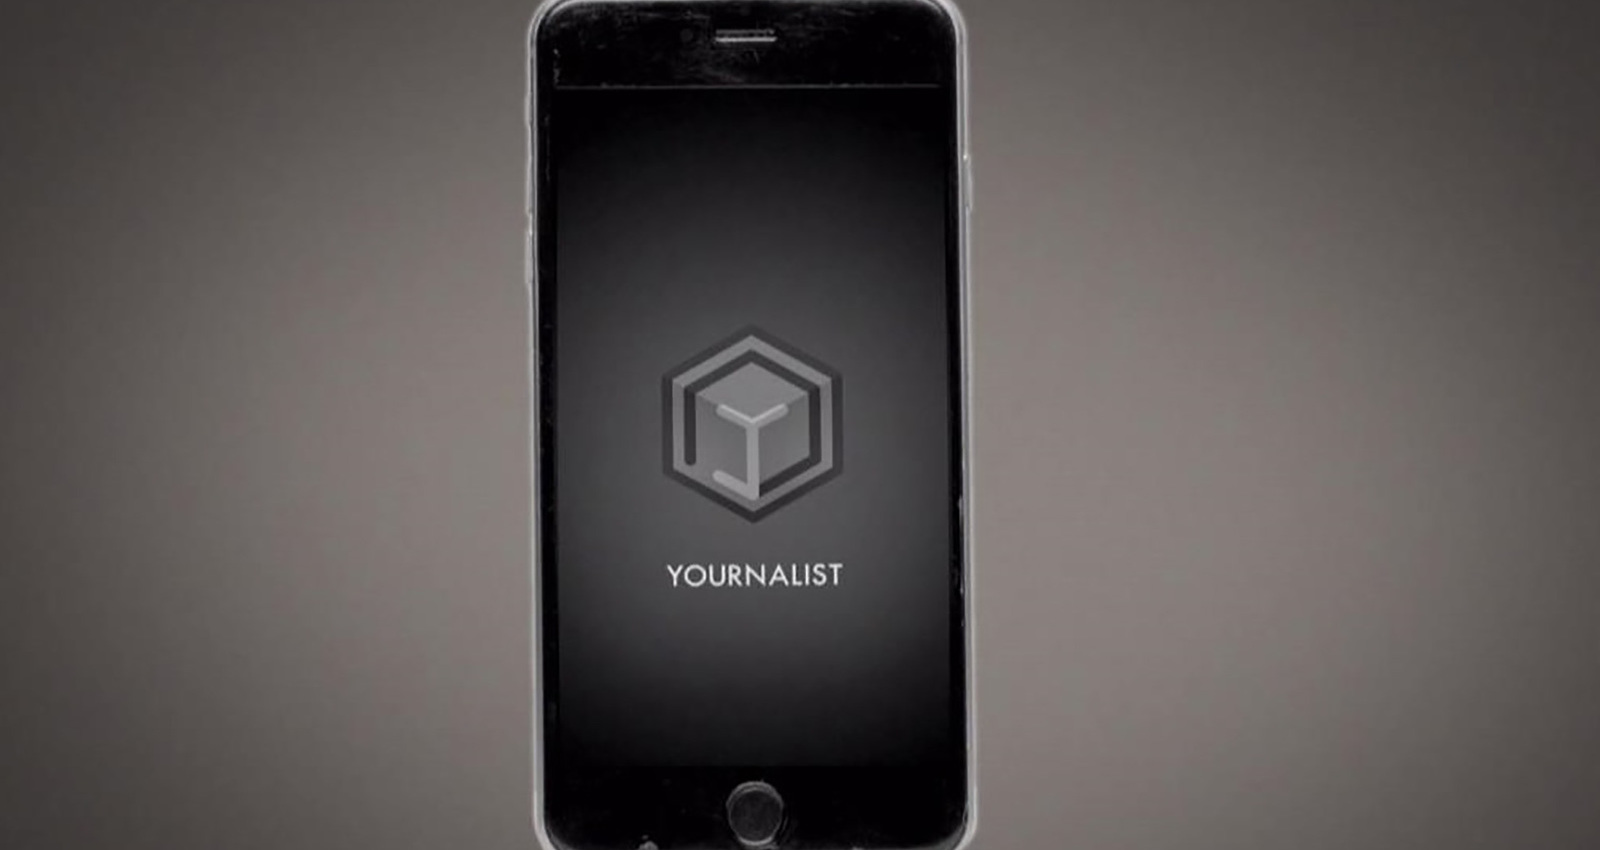 YOURNALIST